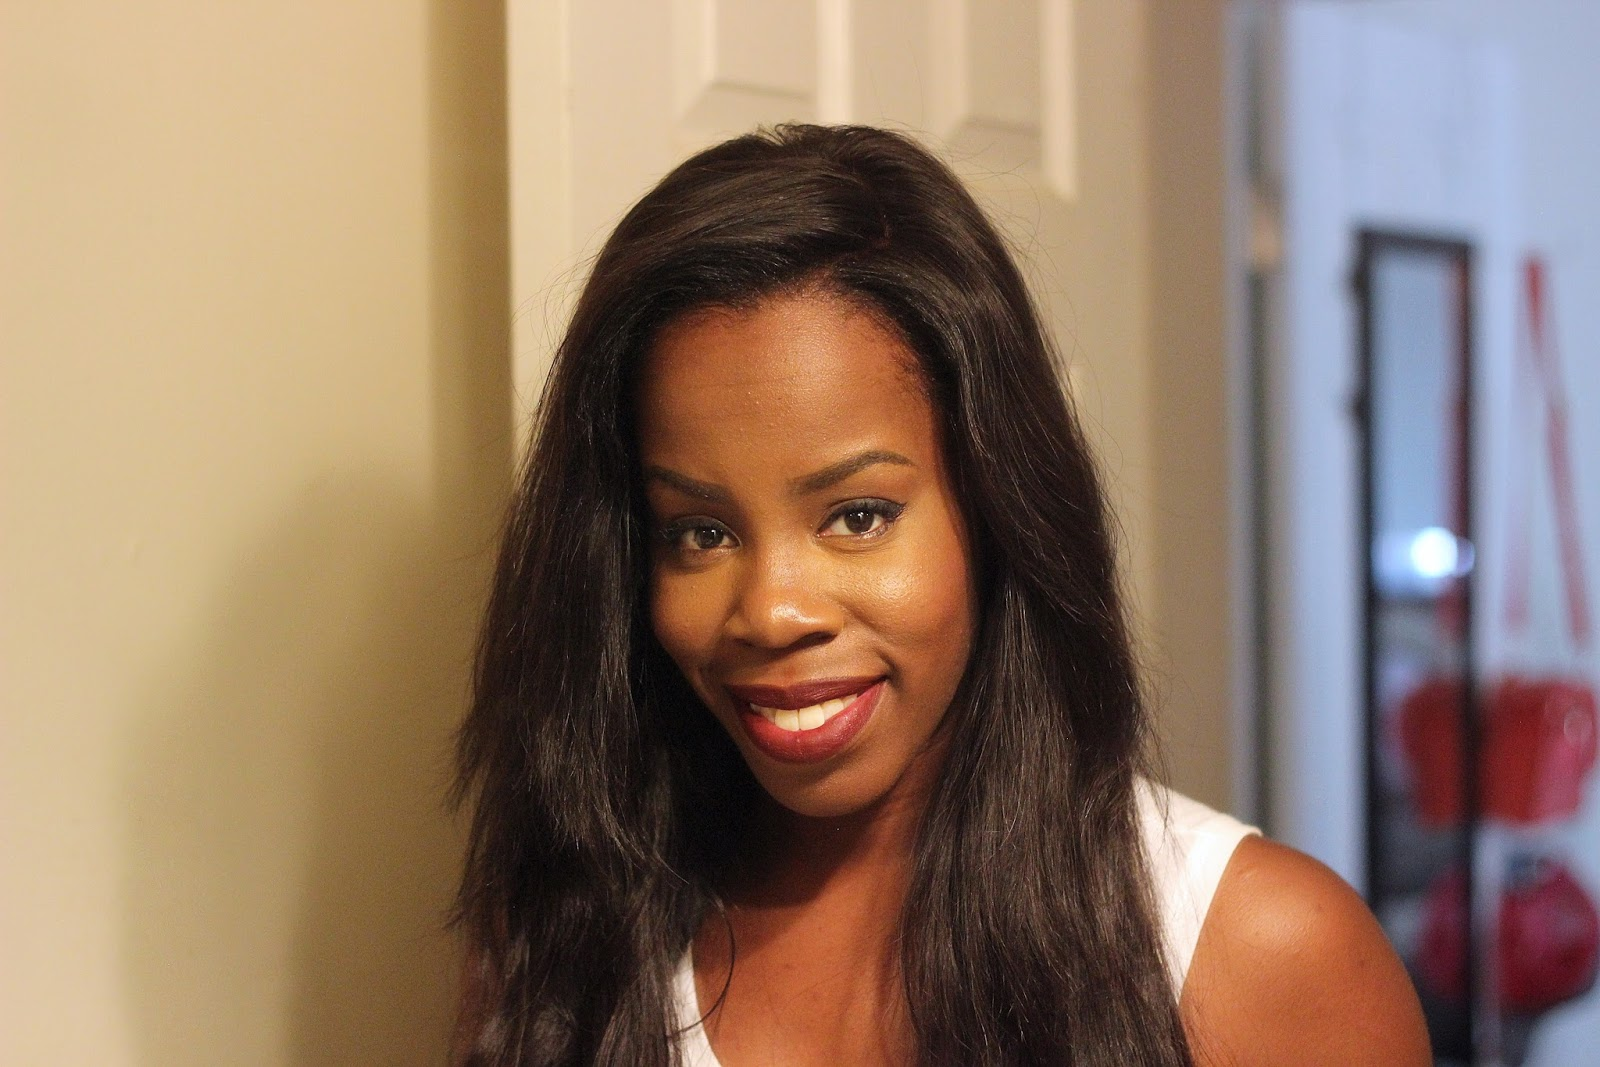 BIRTH OF A FASHION BLOGGER: ON THE ROAD TO HAIR RECOVERY | SHEAMOISTURE